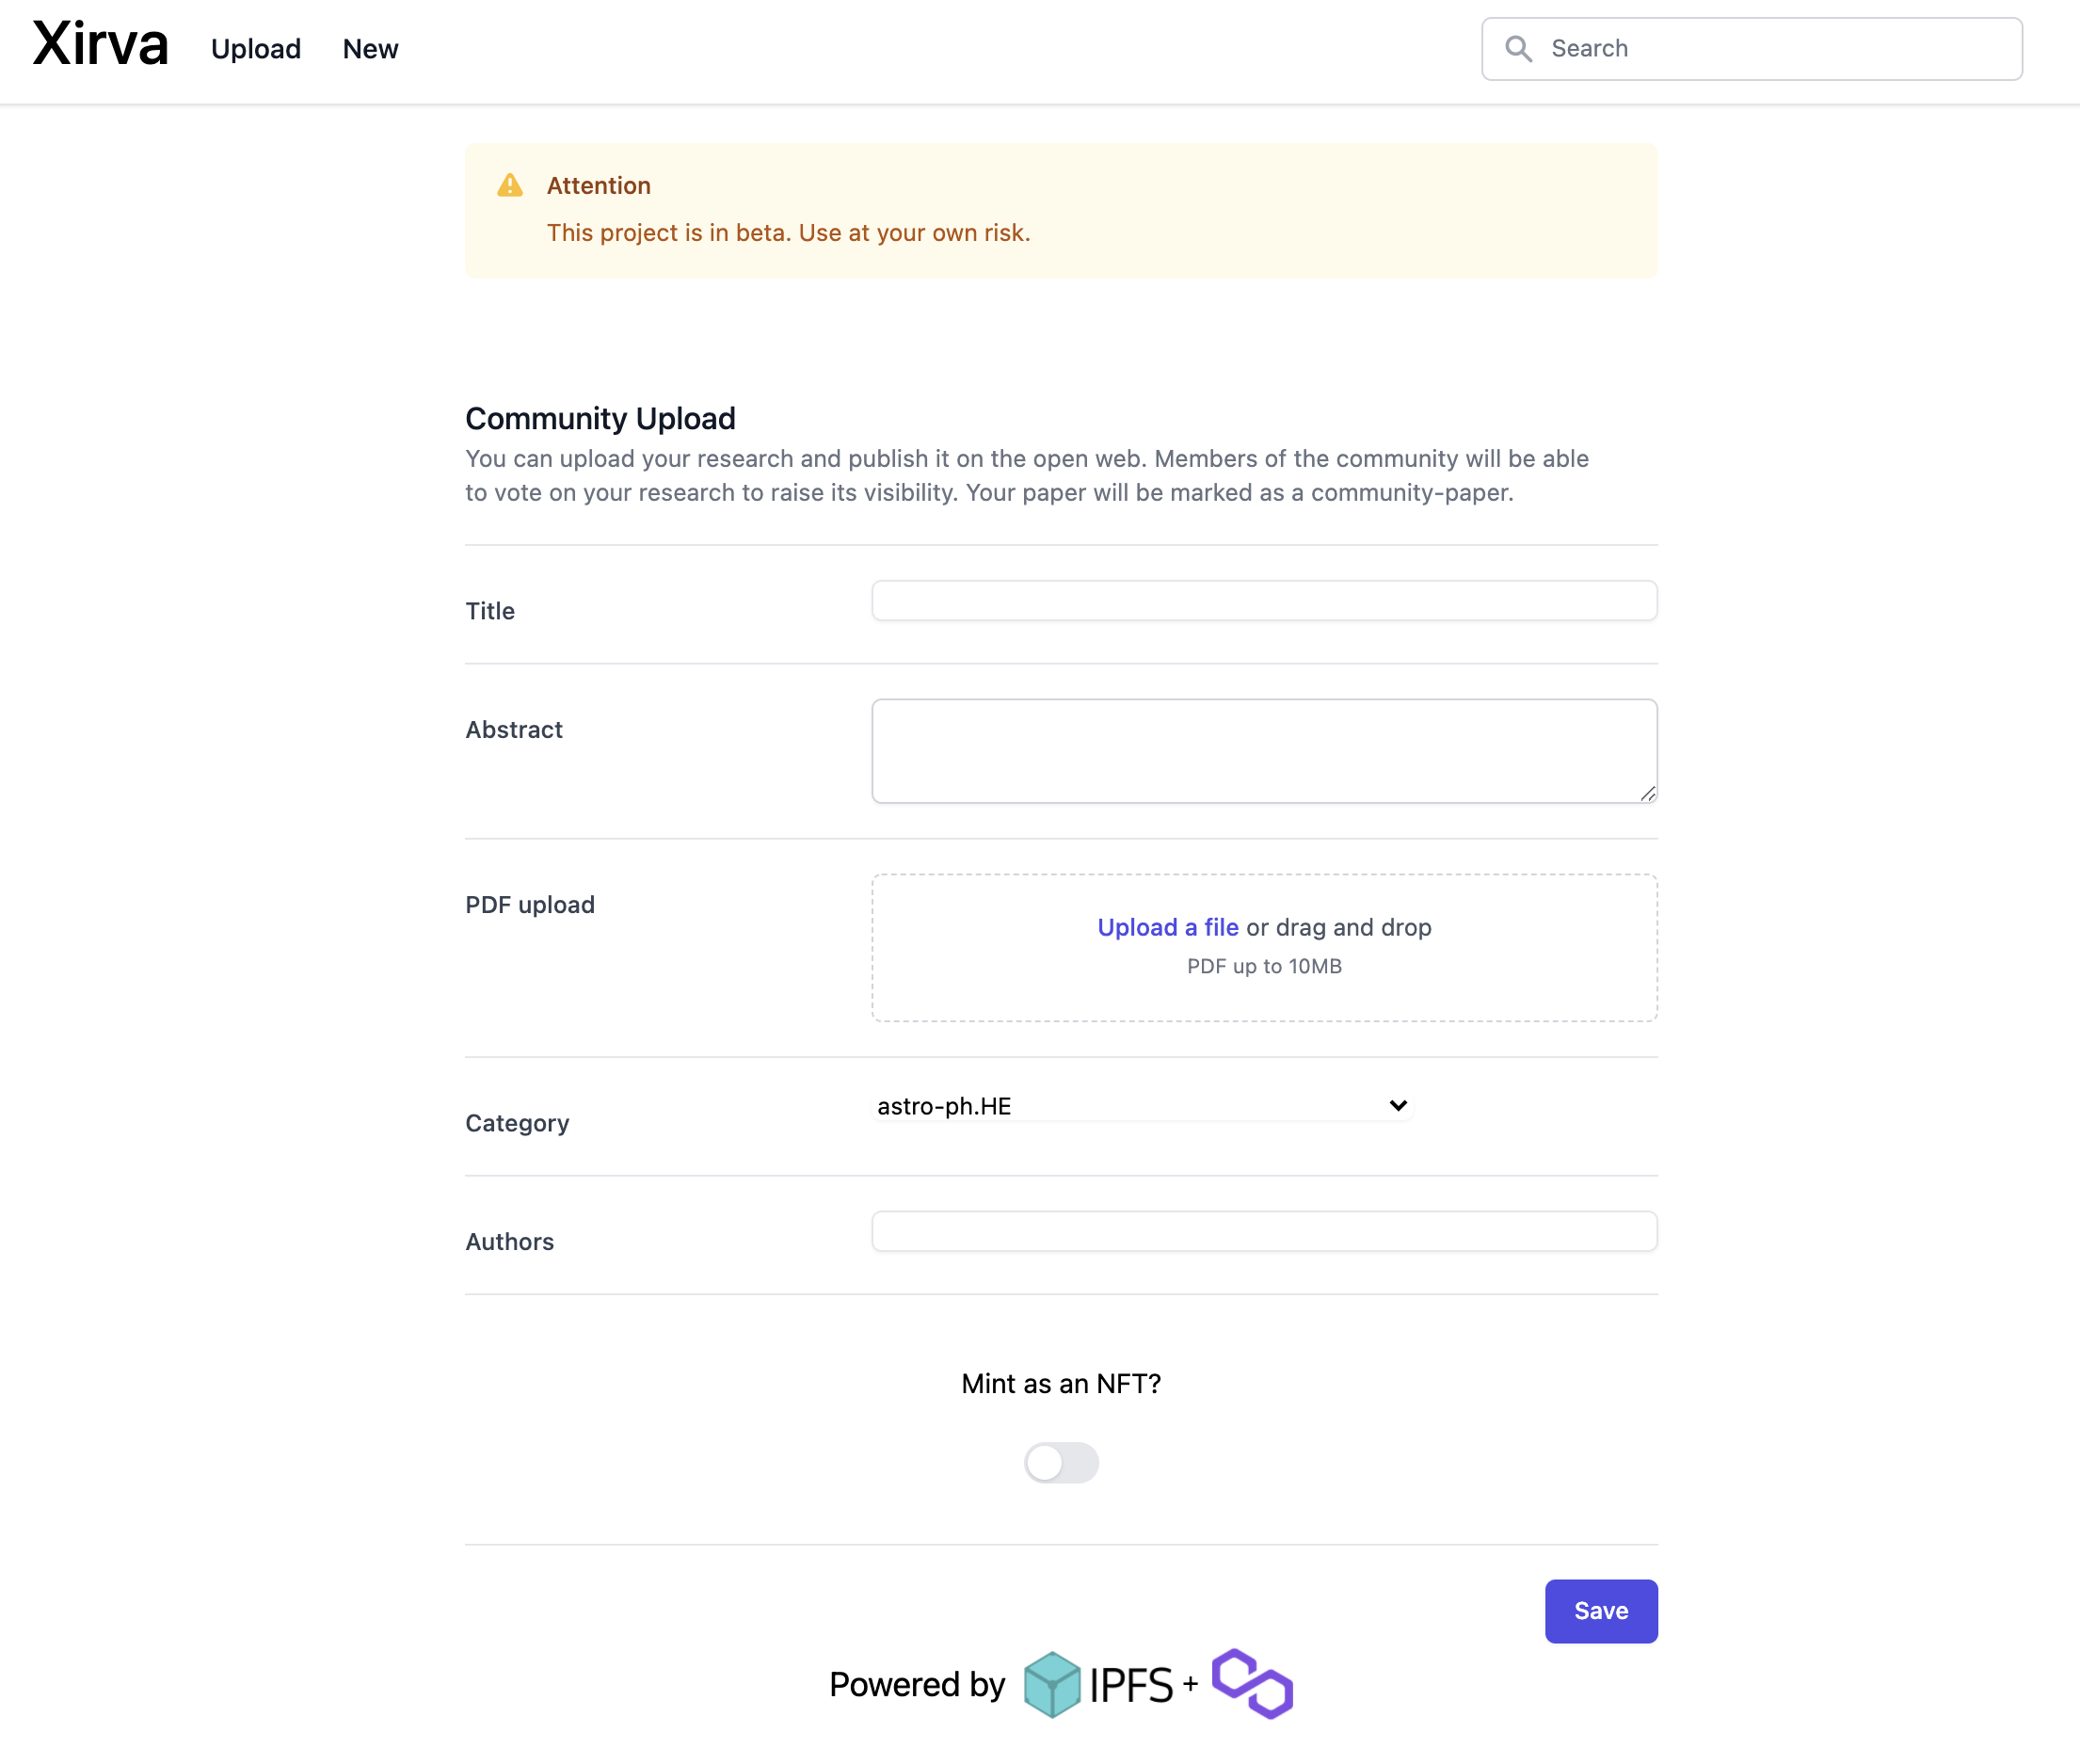 https://ethglobal.s3.amazonaws.com/recIPCY4zExiQZ3Rq/upload-page-not-shown-in-demo.png